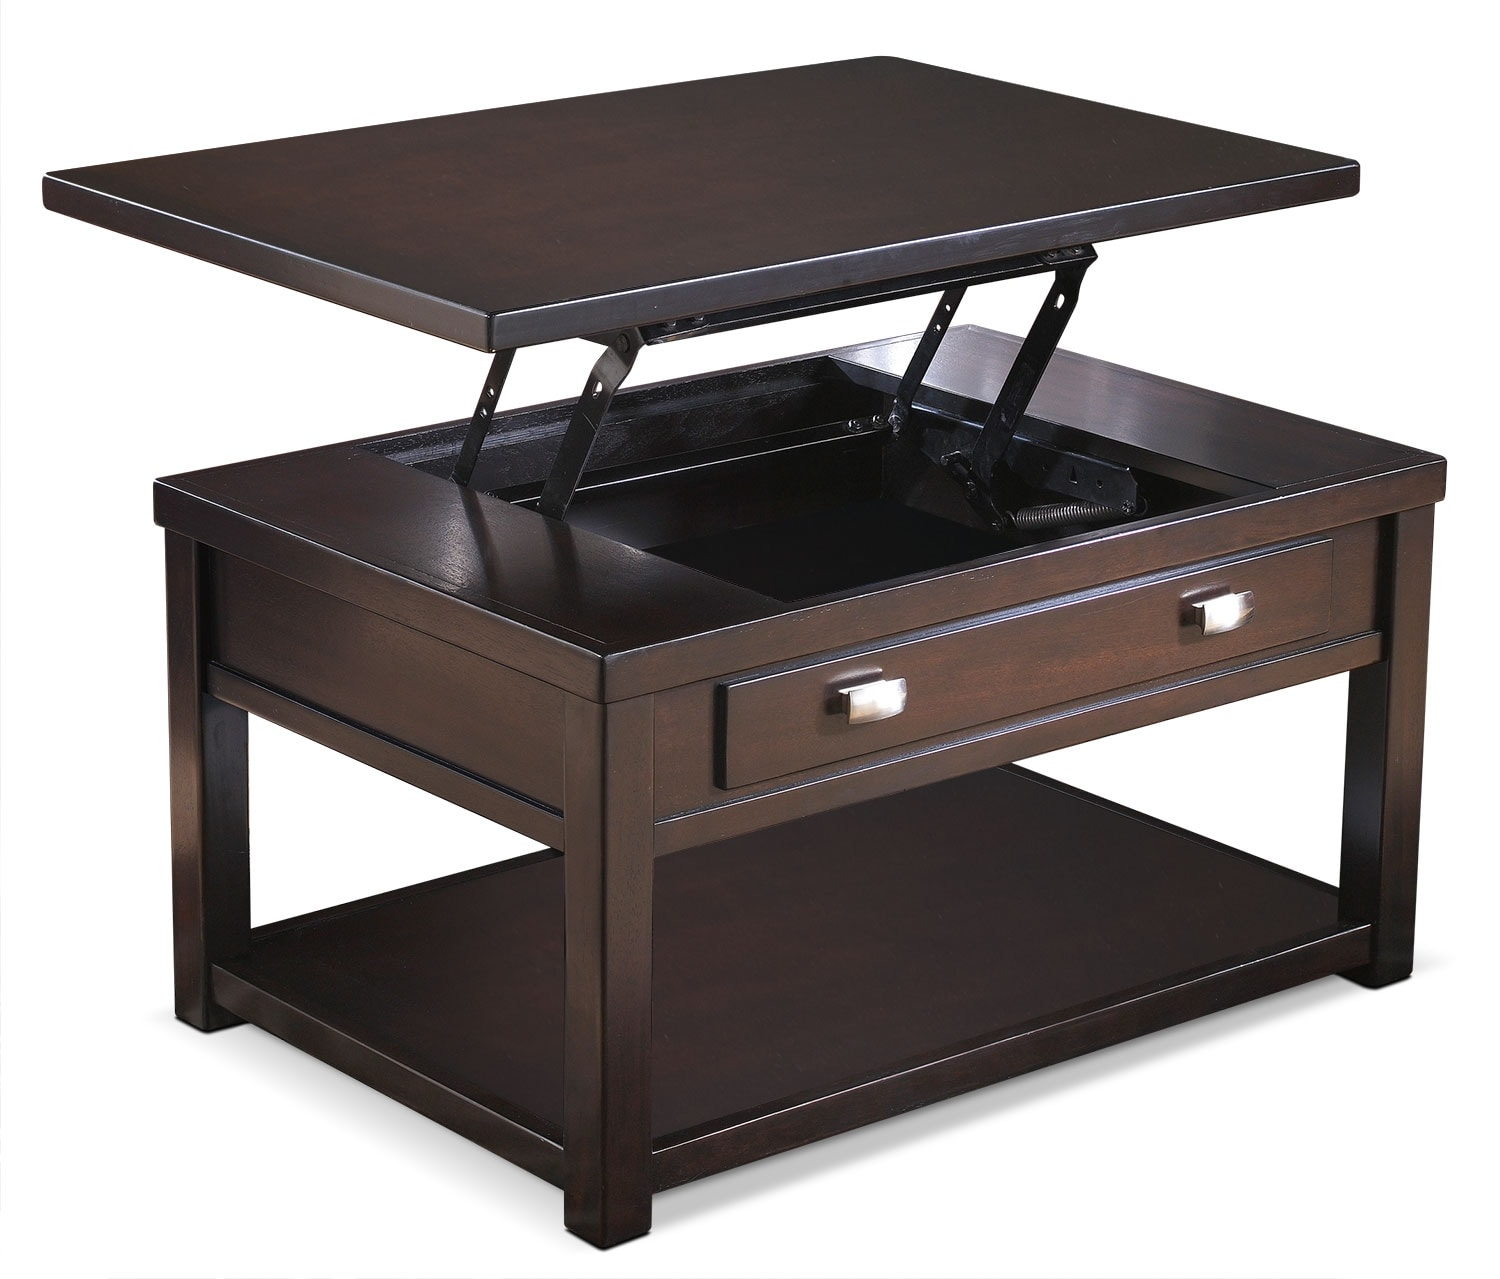 Accent and Occasional Furniture - Hatsuko Coffee Table with Lift-Top